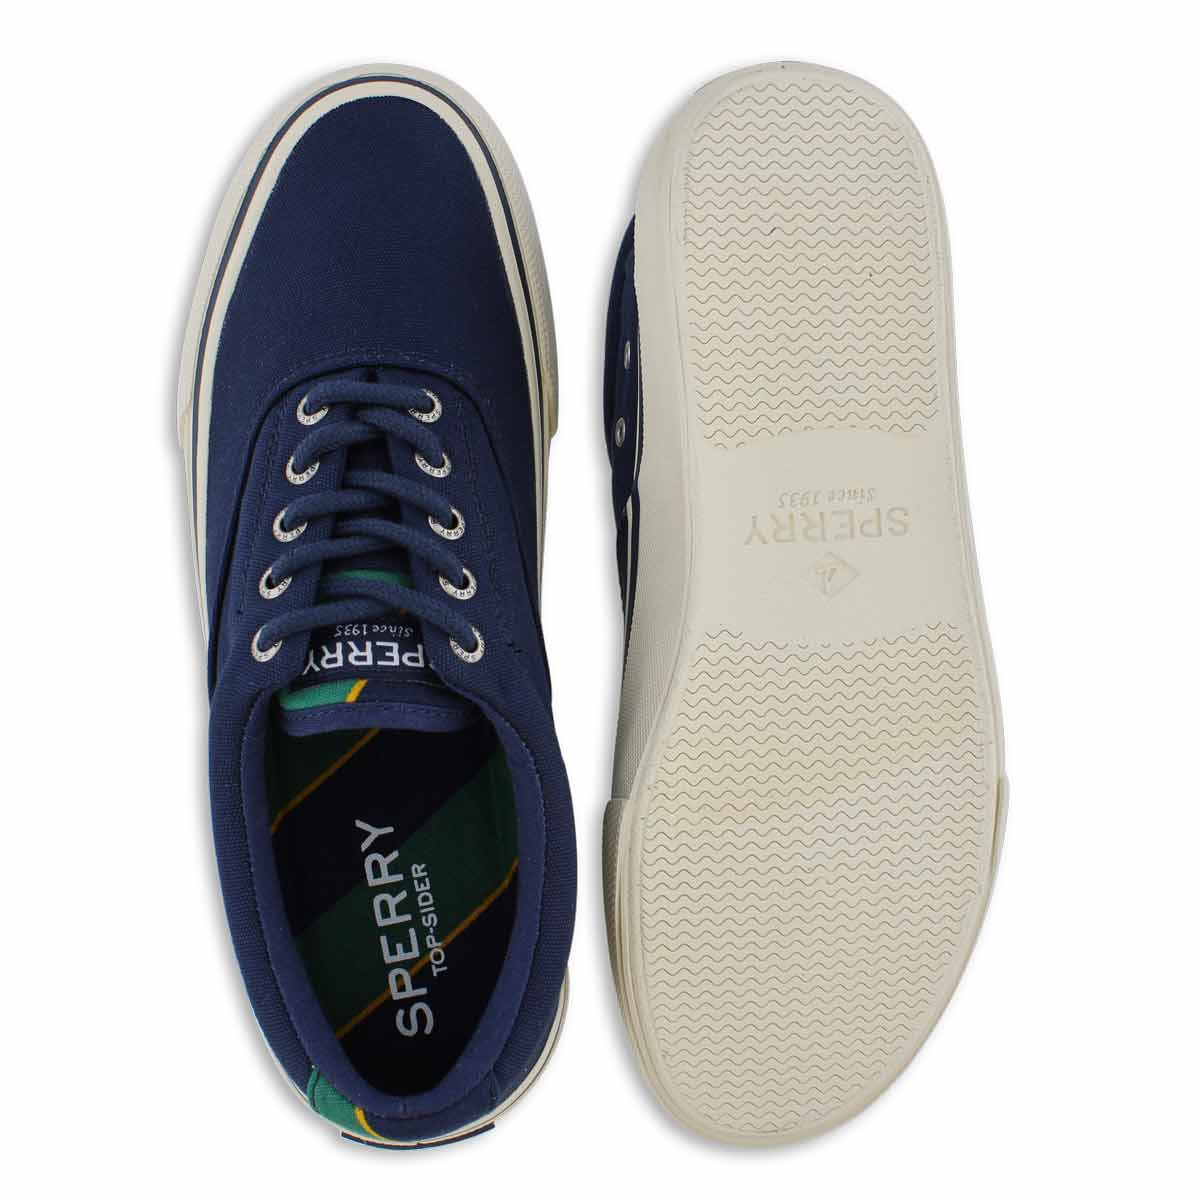 Men's STRIPER II CVO navy lace up sneaker